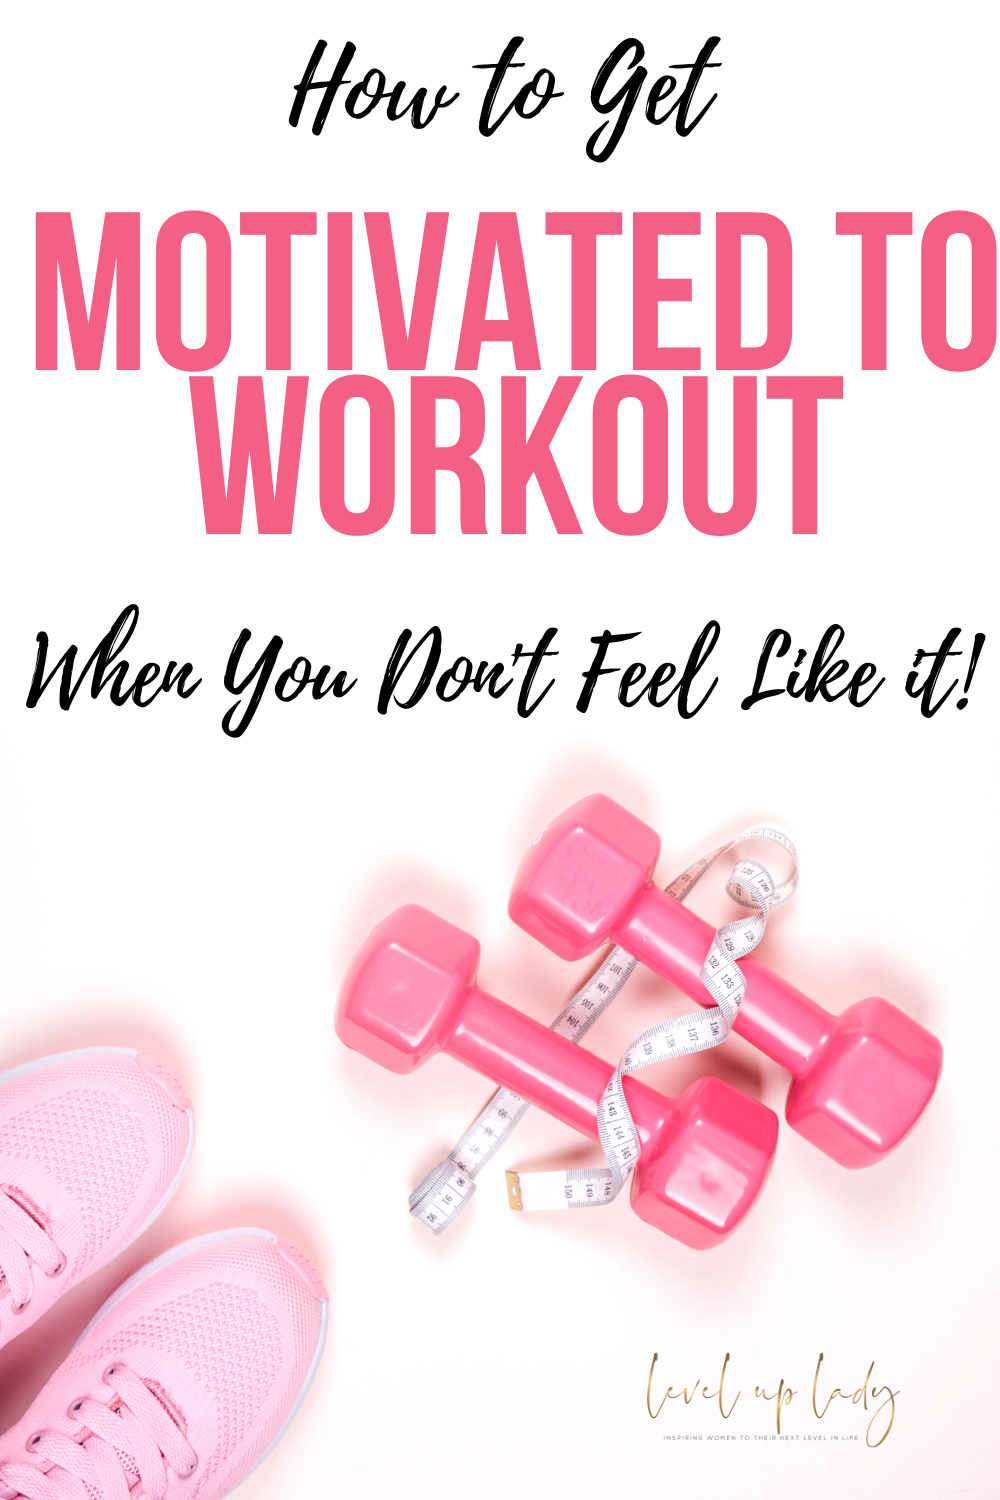 7 Ways to Stay Motivated to Workout